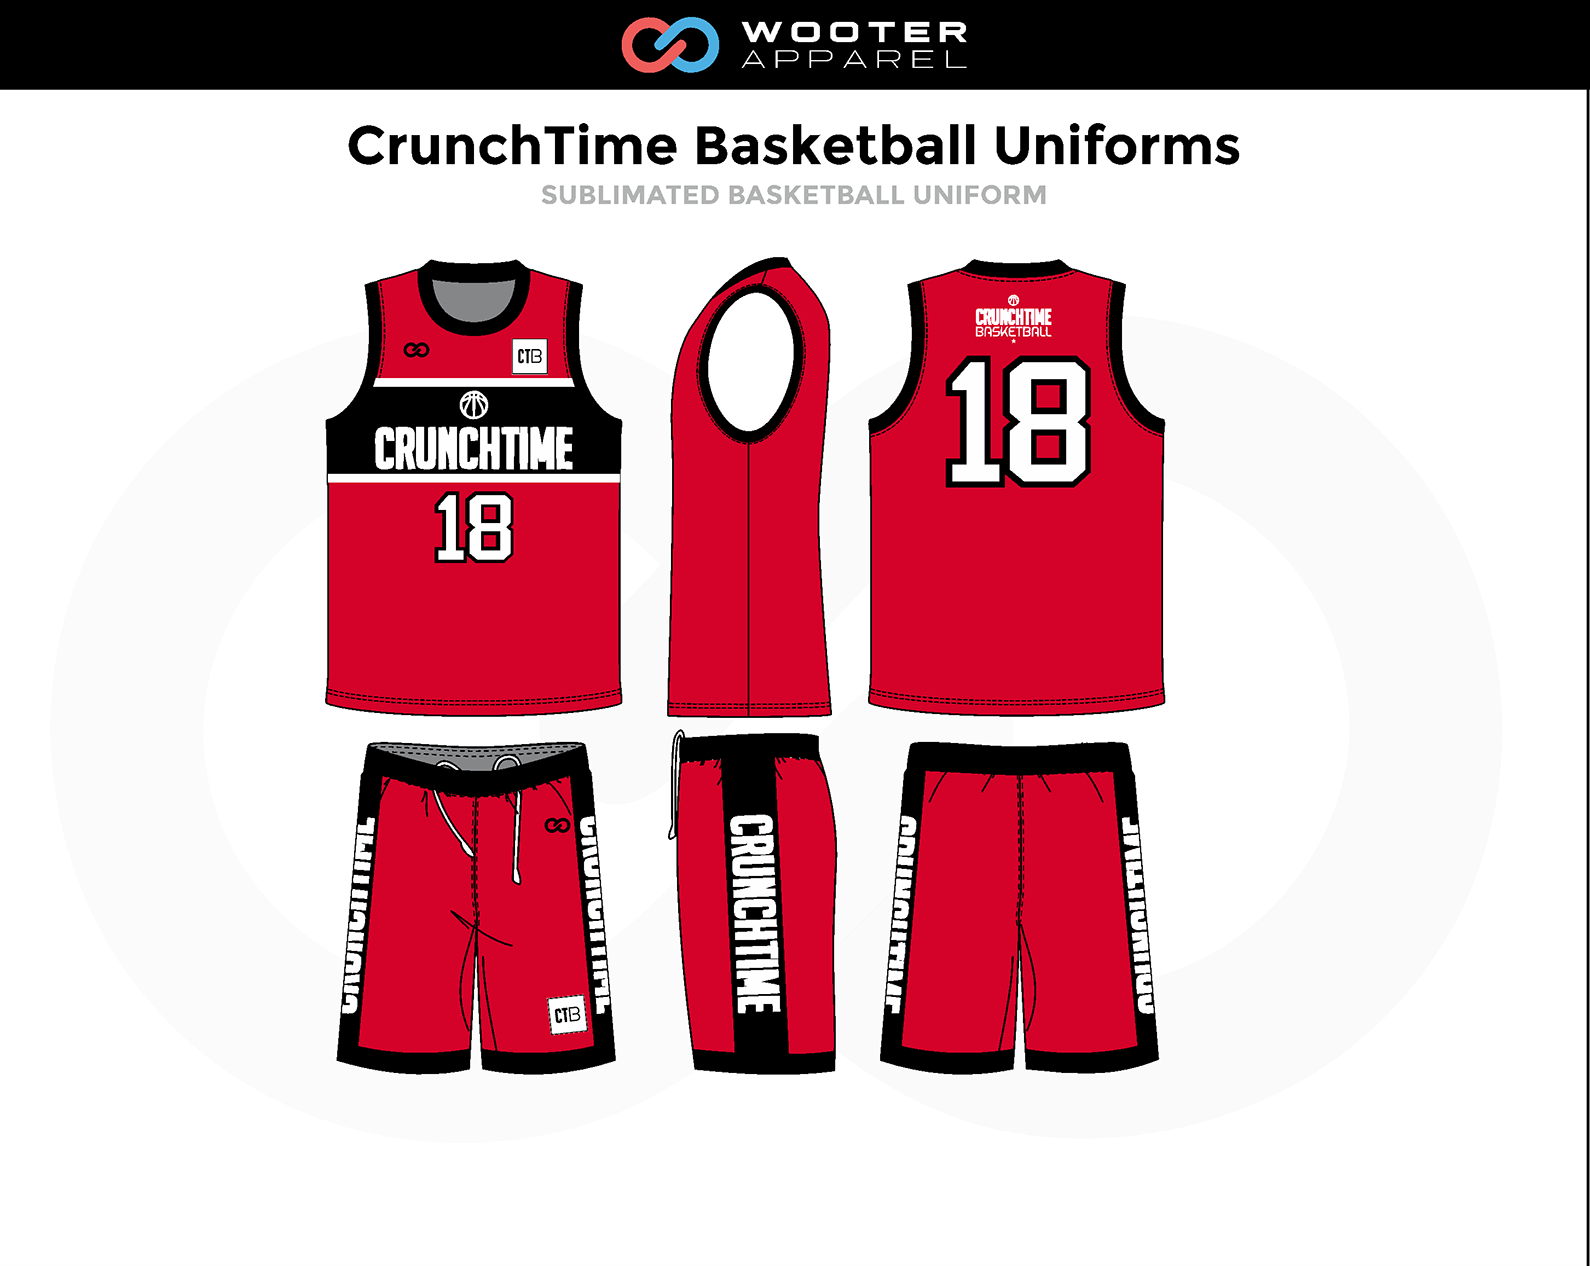 2018-09-19 CrunchTime Basketball Uniforms 18.png